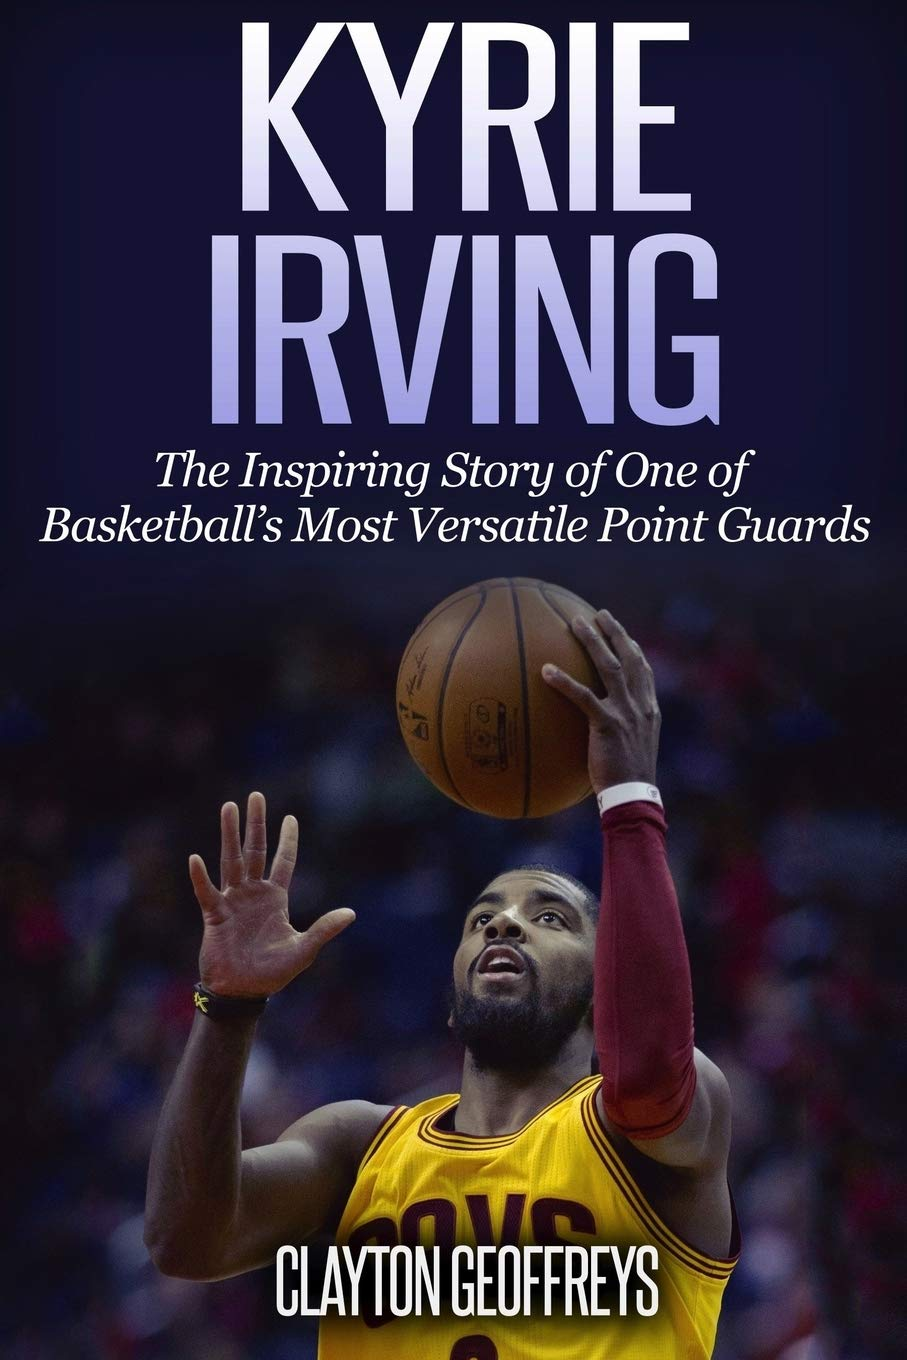 Amazon.com: Kyrie Irving: The Inspiring Story of One of ...